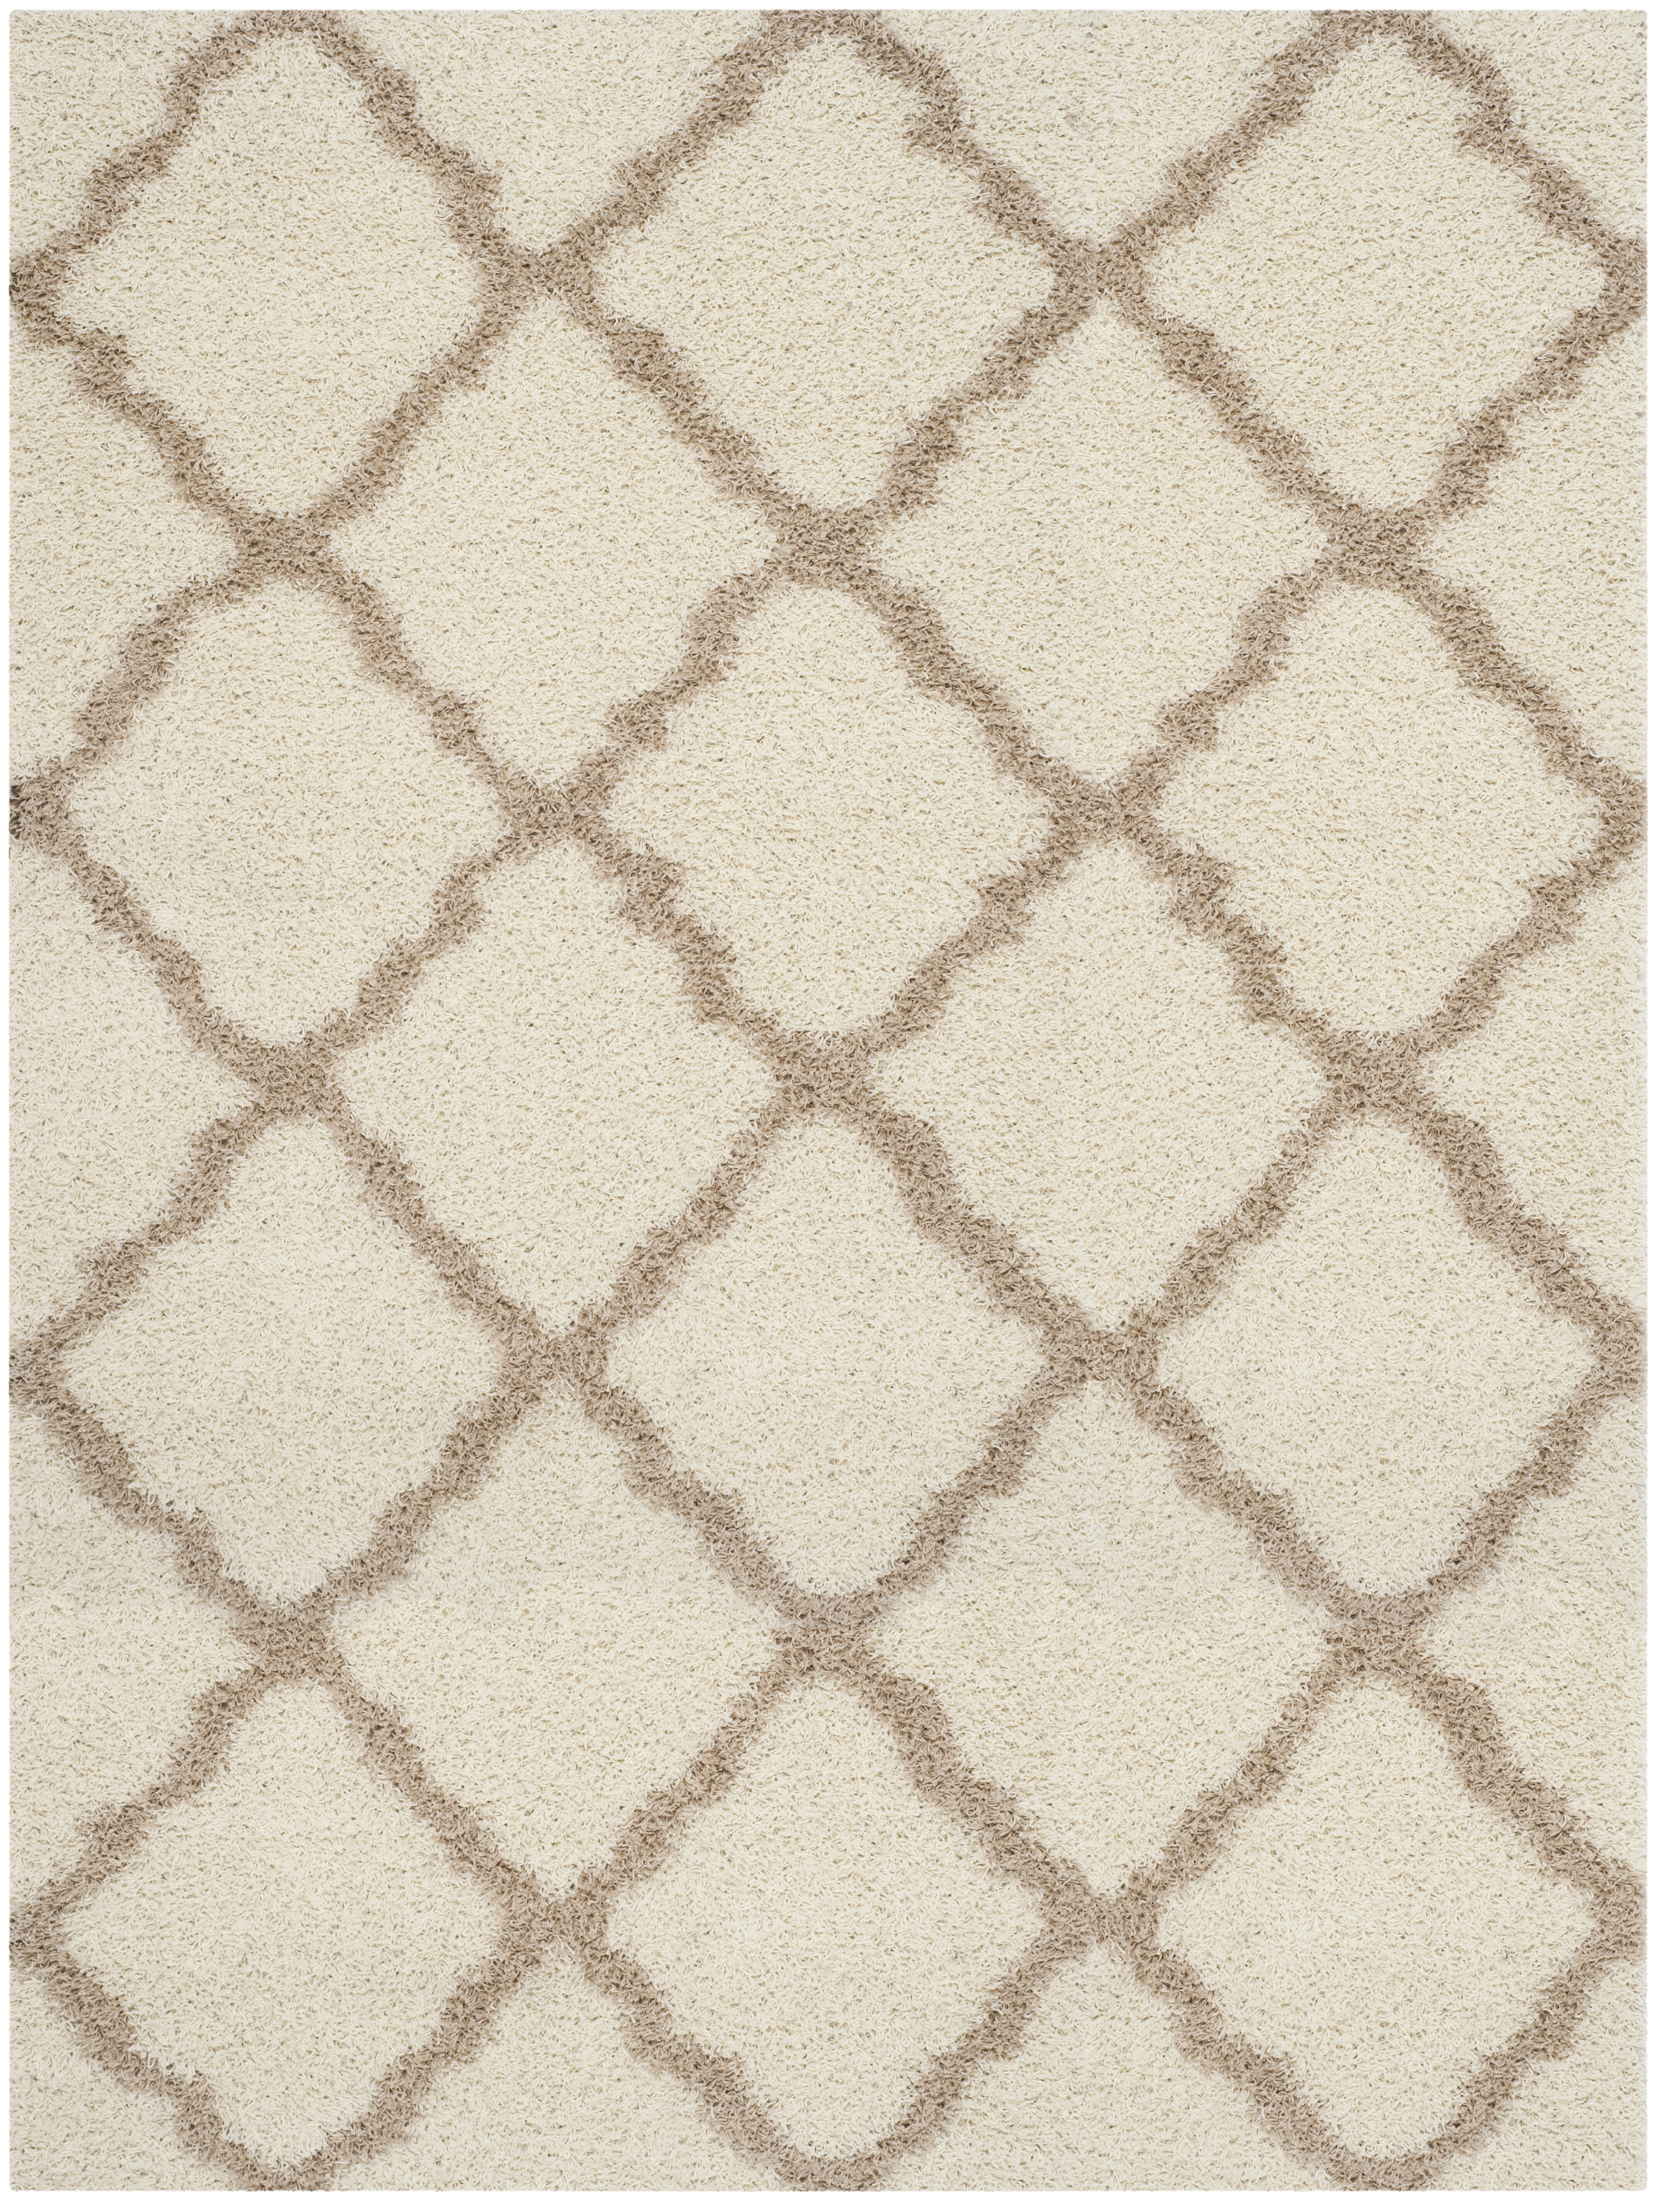 accents design interior rug rugs home online ivory shag style product moroccan